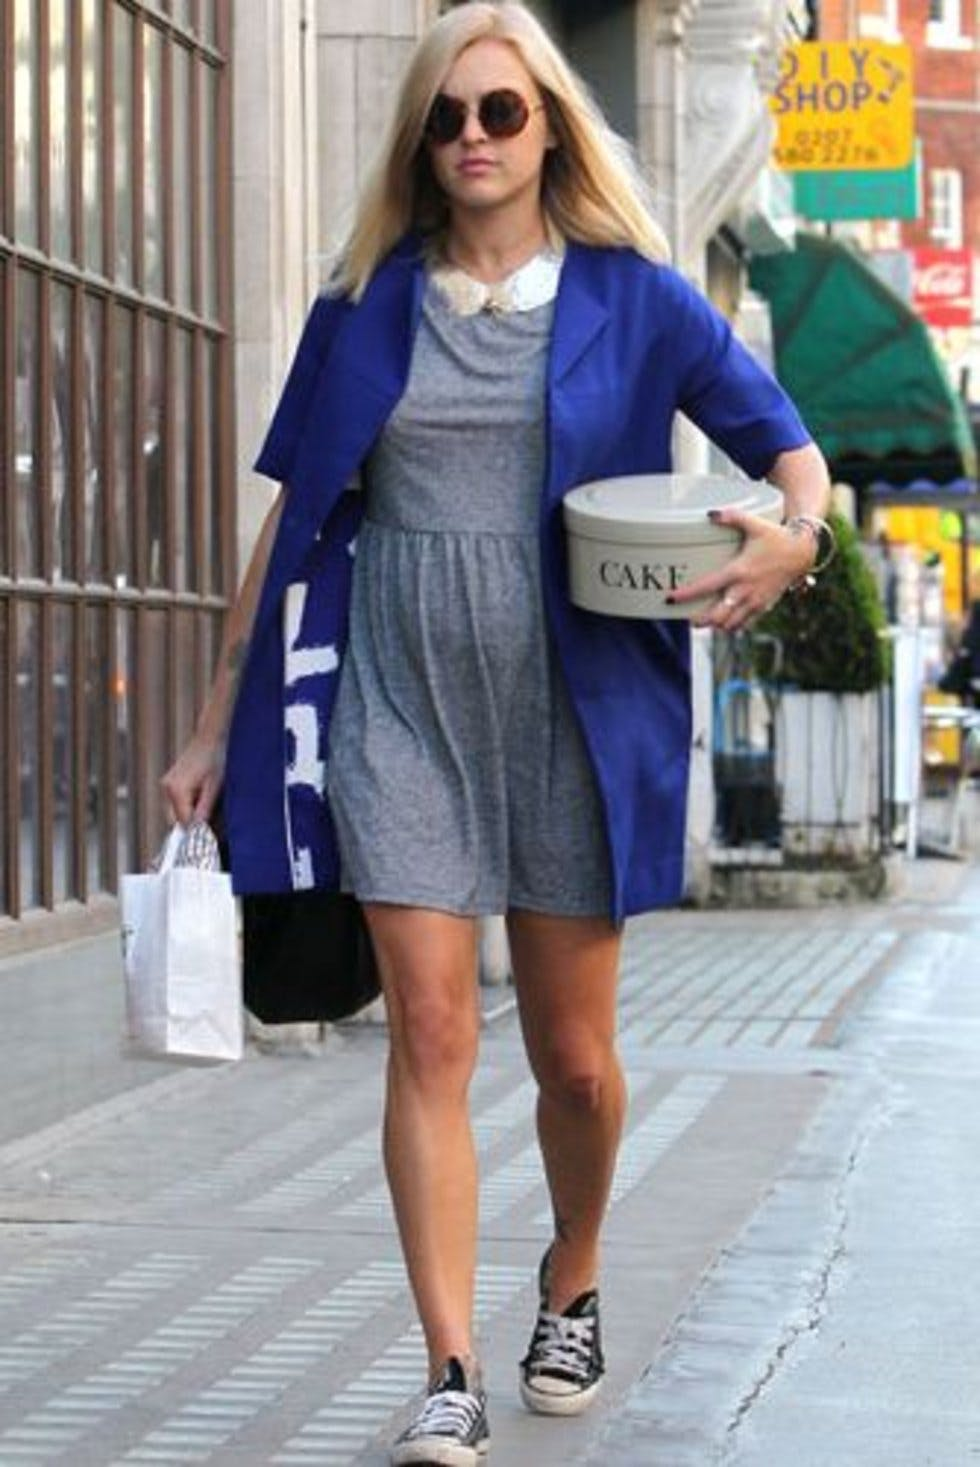 e997f63d204691 Fearne Cotton teamed a grey jersey dress and cobalt blue coat with Converse  shoes and a sequin collar outside the Radio 1 Studios.